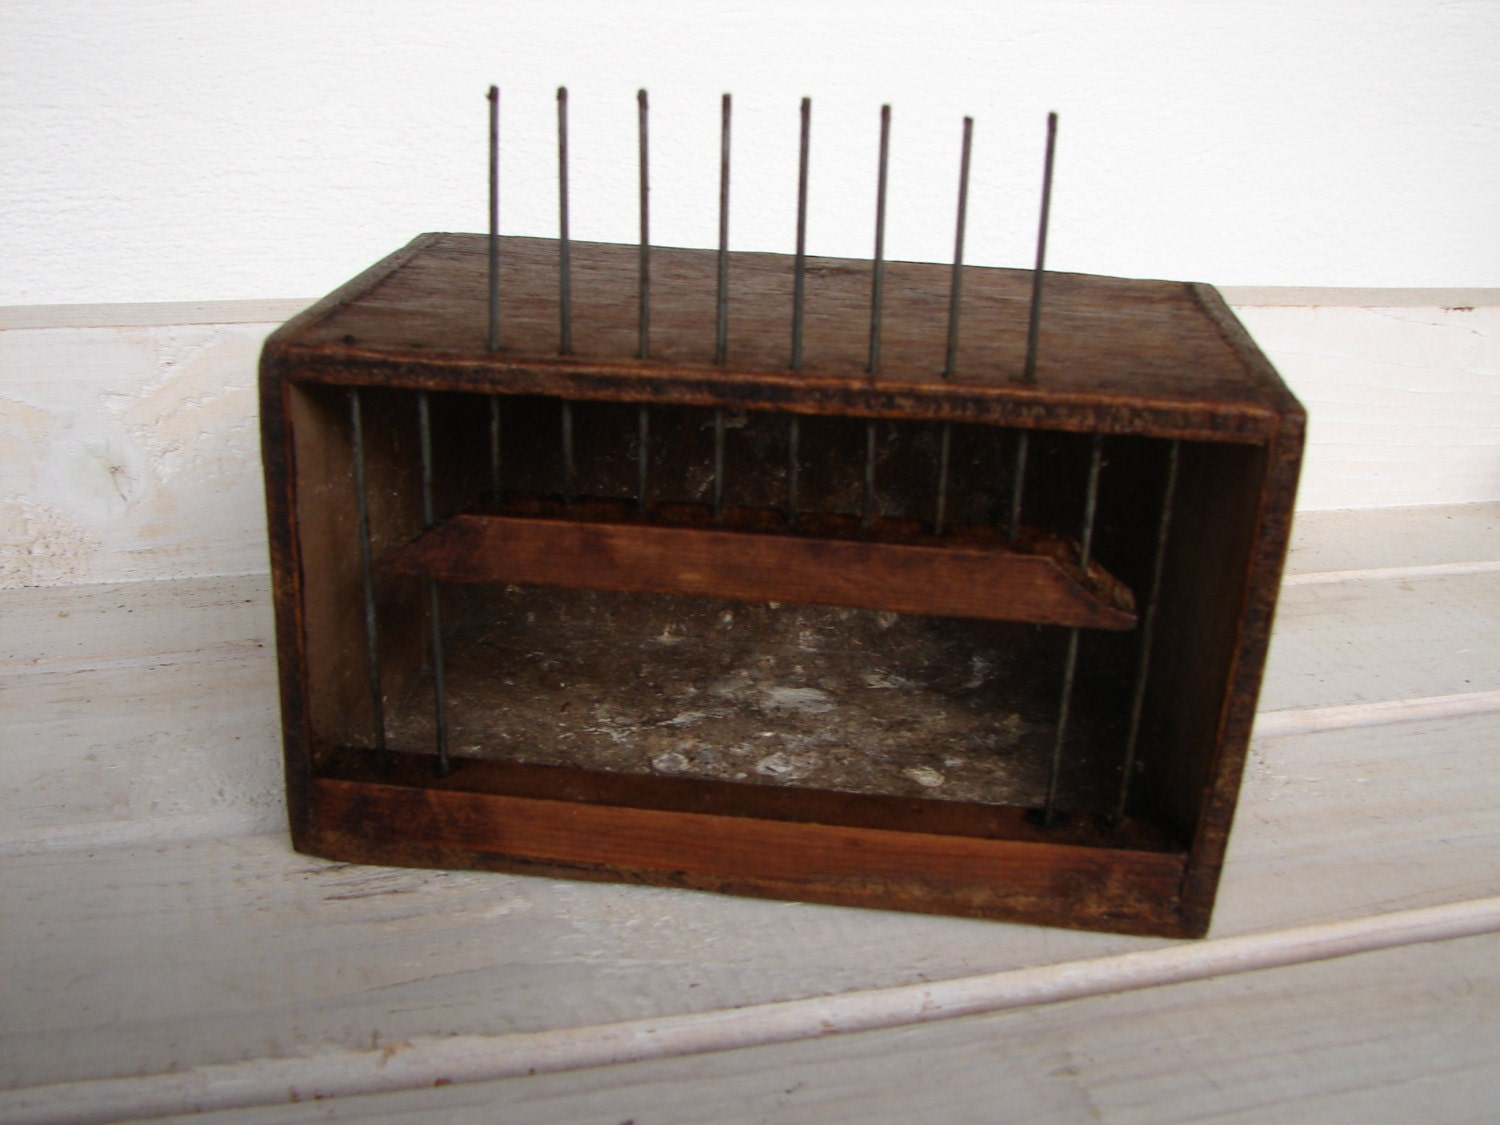 Antique Frenchwood Amp Wire Bird Cage Carrier Transporter